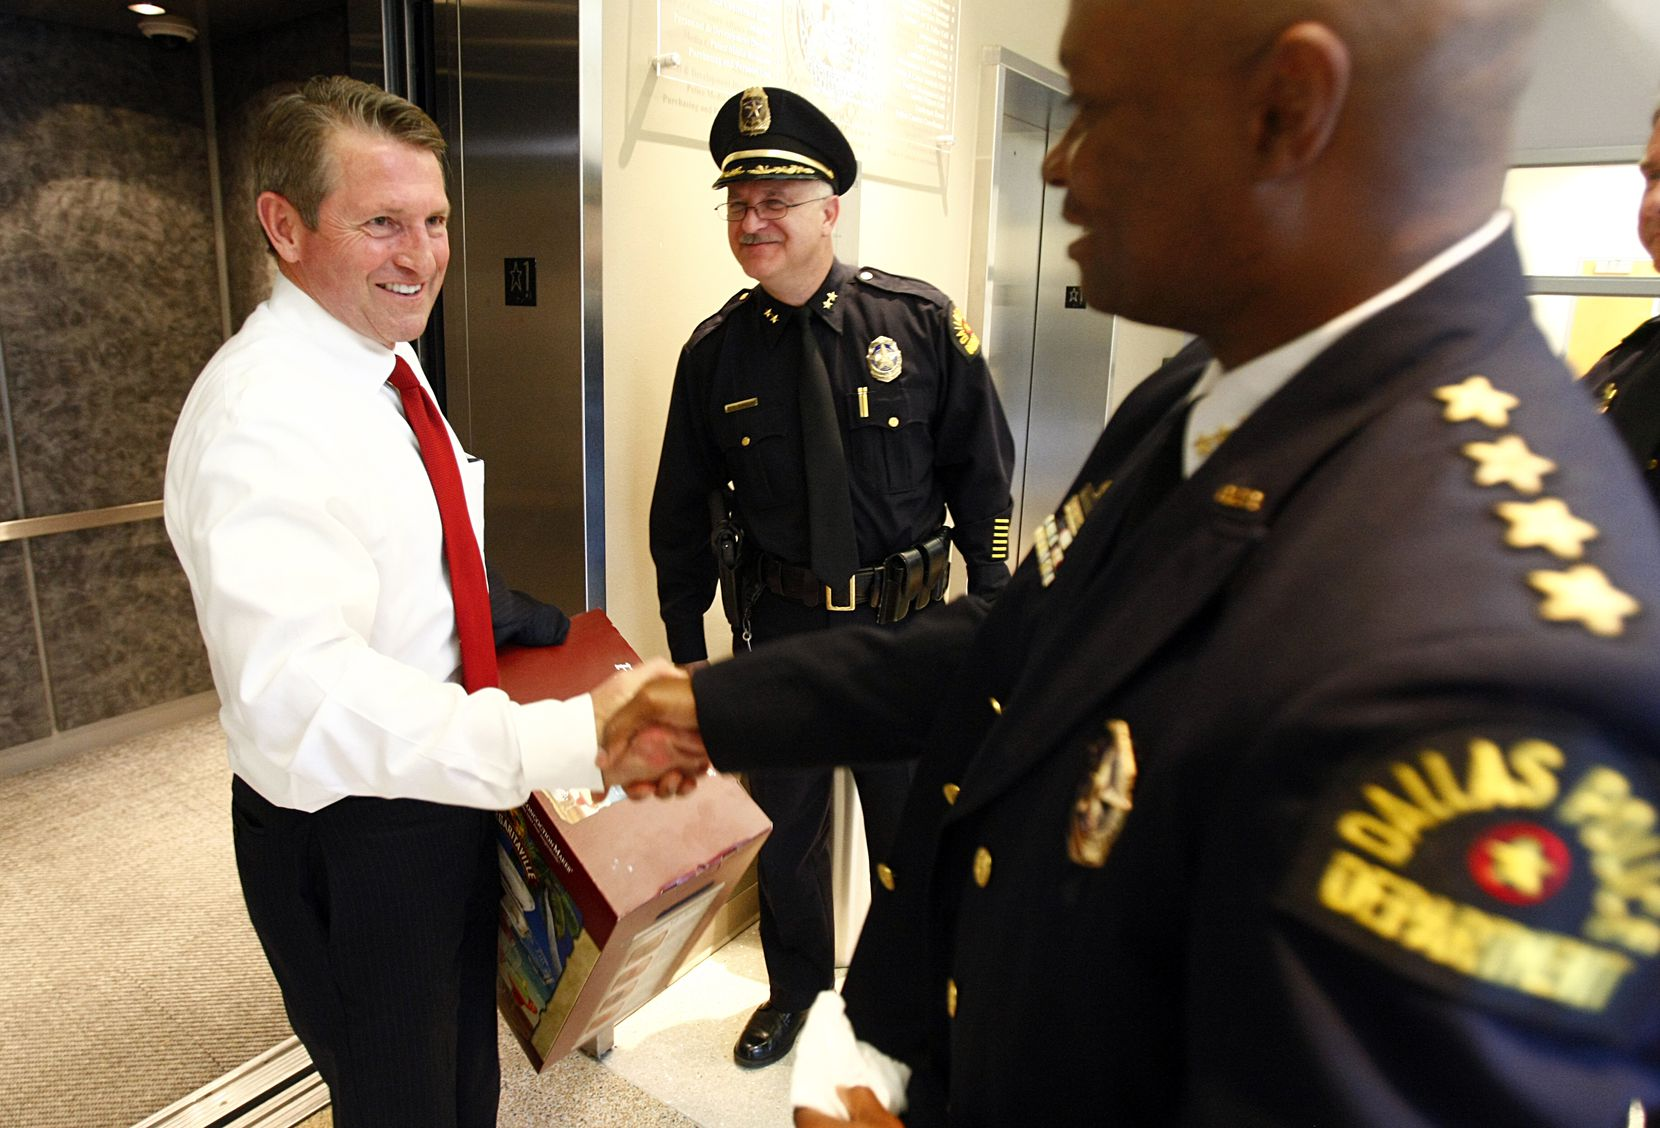 On his way out of police headquarters for the last time in 2010, outgoing Dallas Police Chief David Kunkle (left) ran into newly sworn-in Police Chief David Brown.